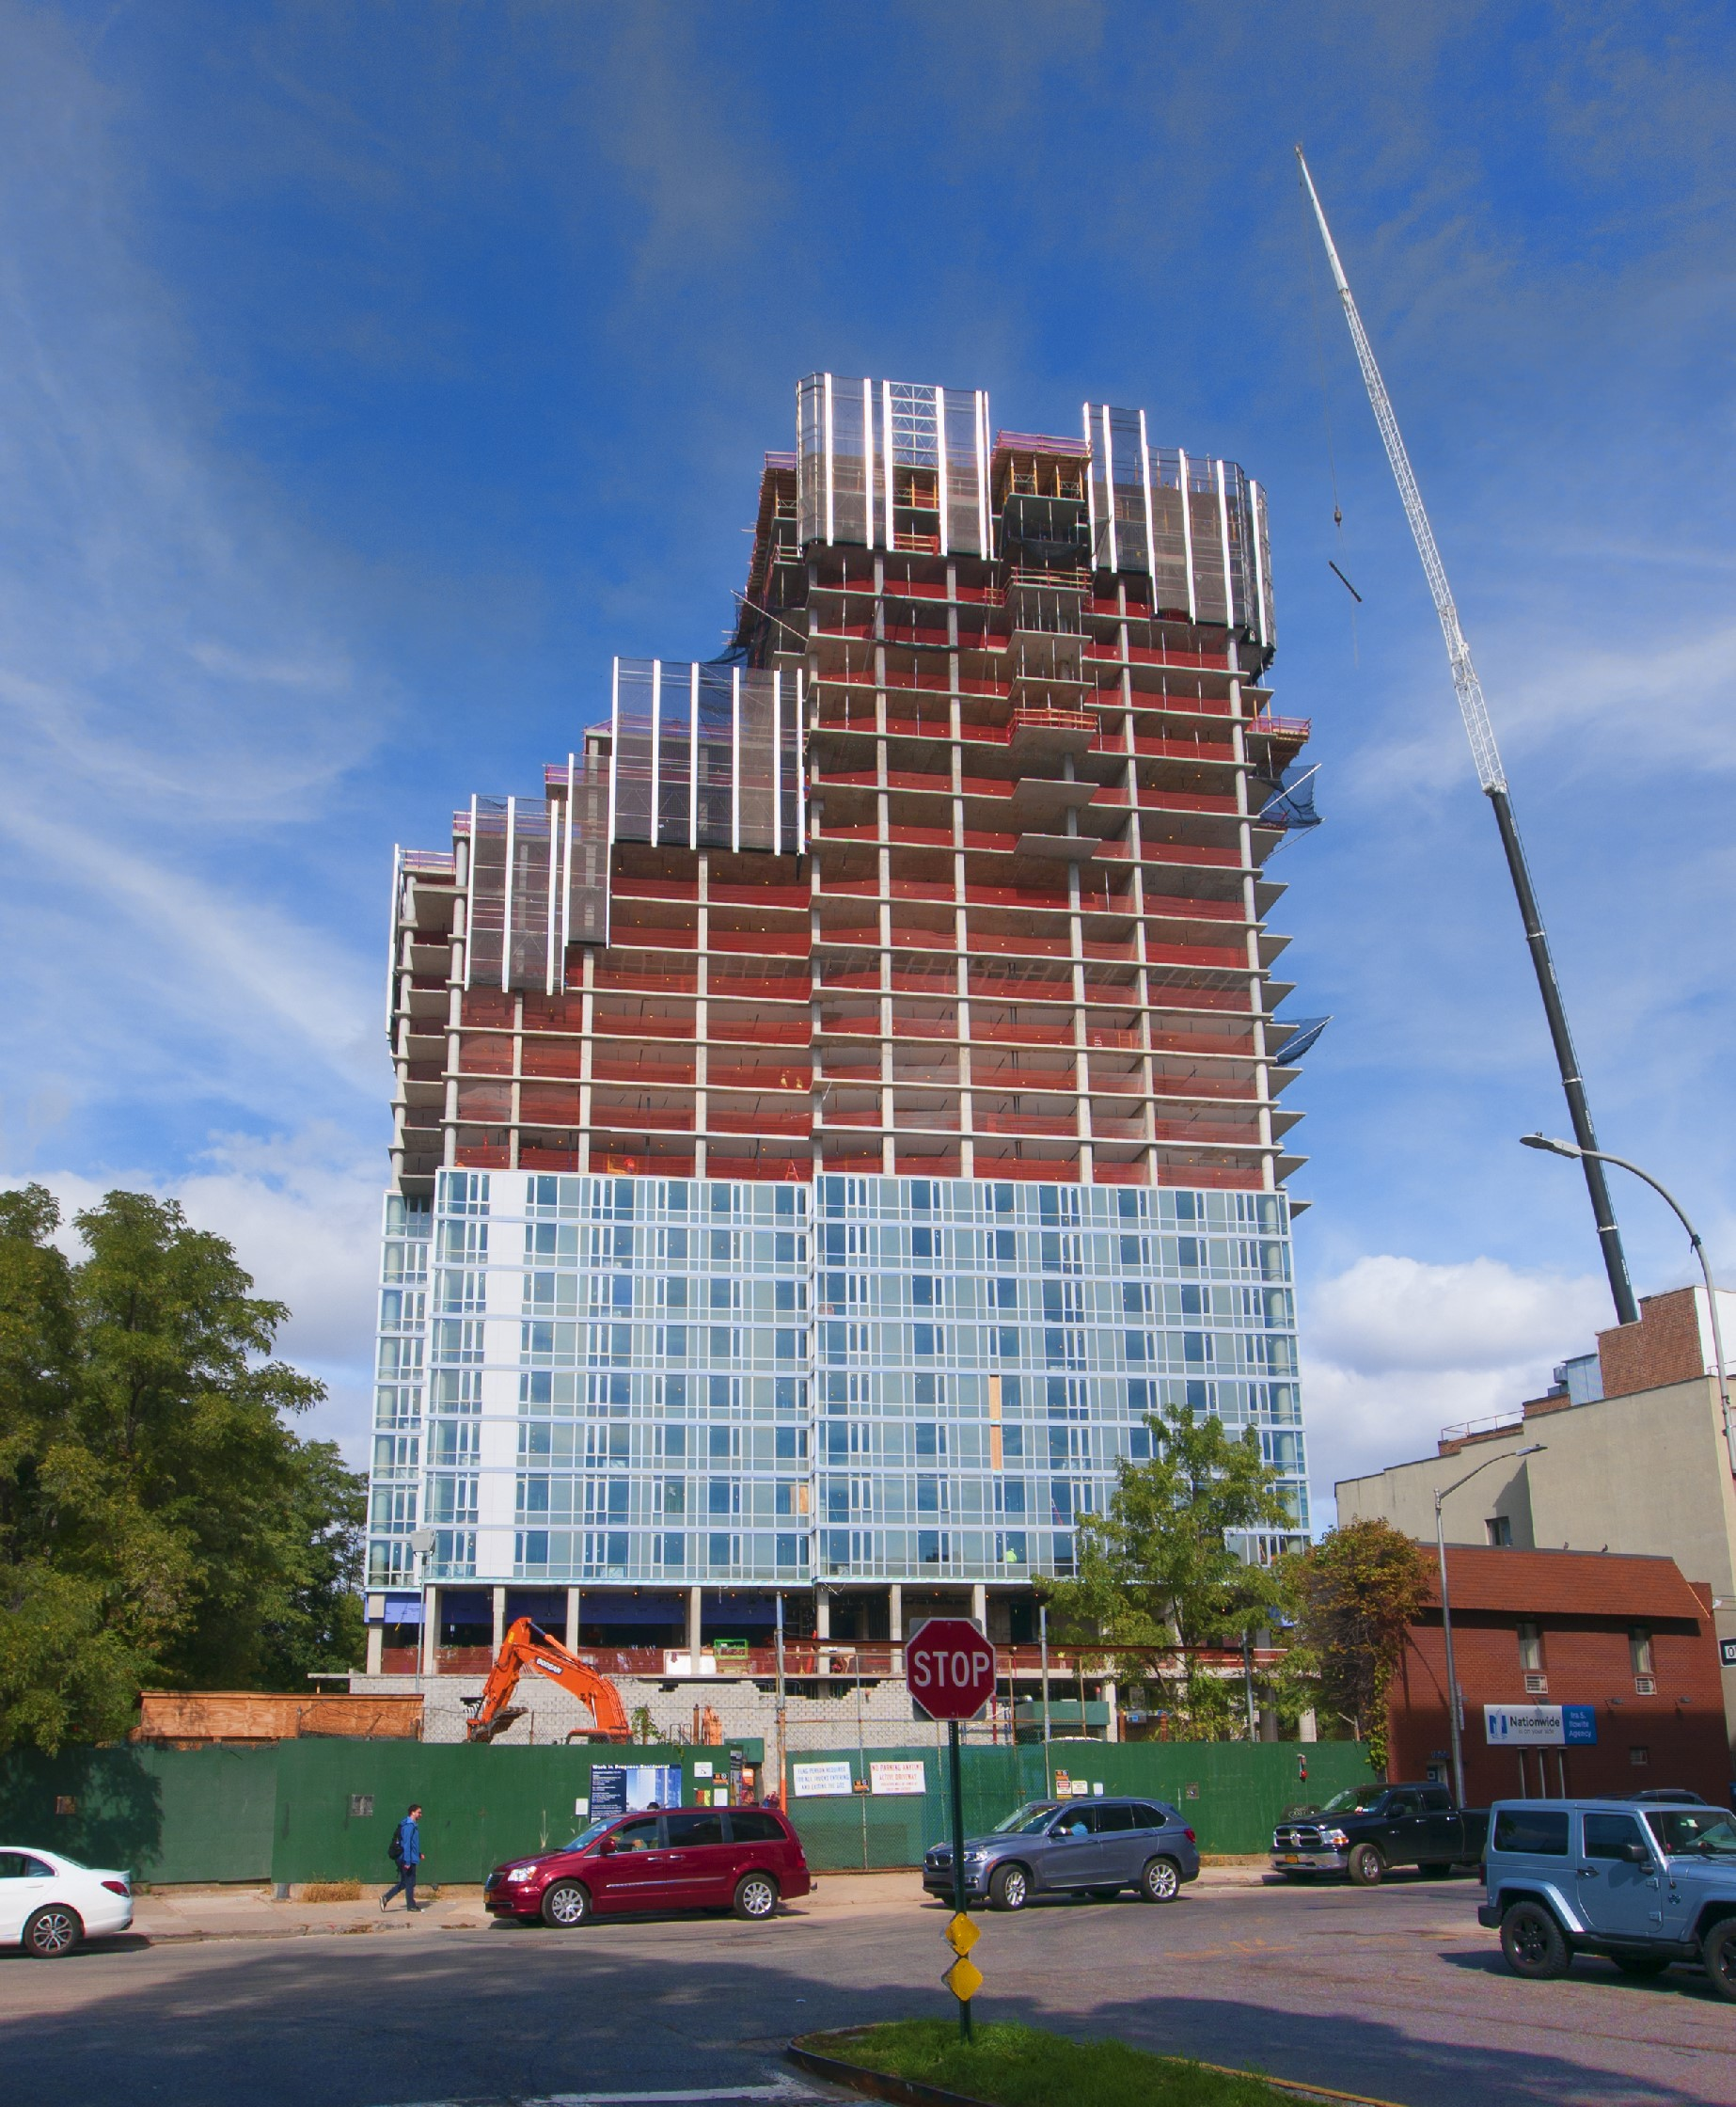 Concrete Superstructure: 1501 Voorhies Ave. Brooklyn, NY 31 Story